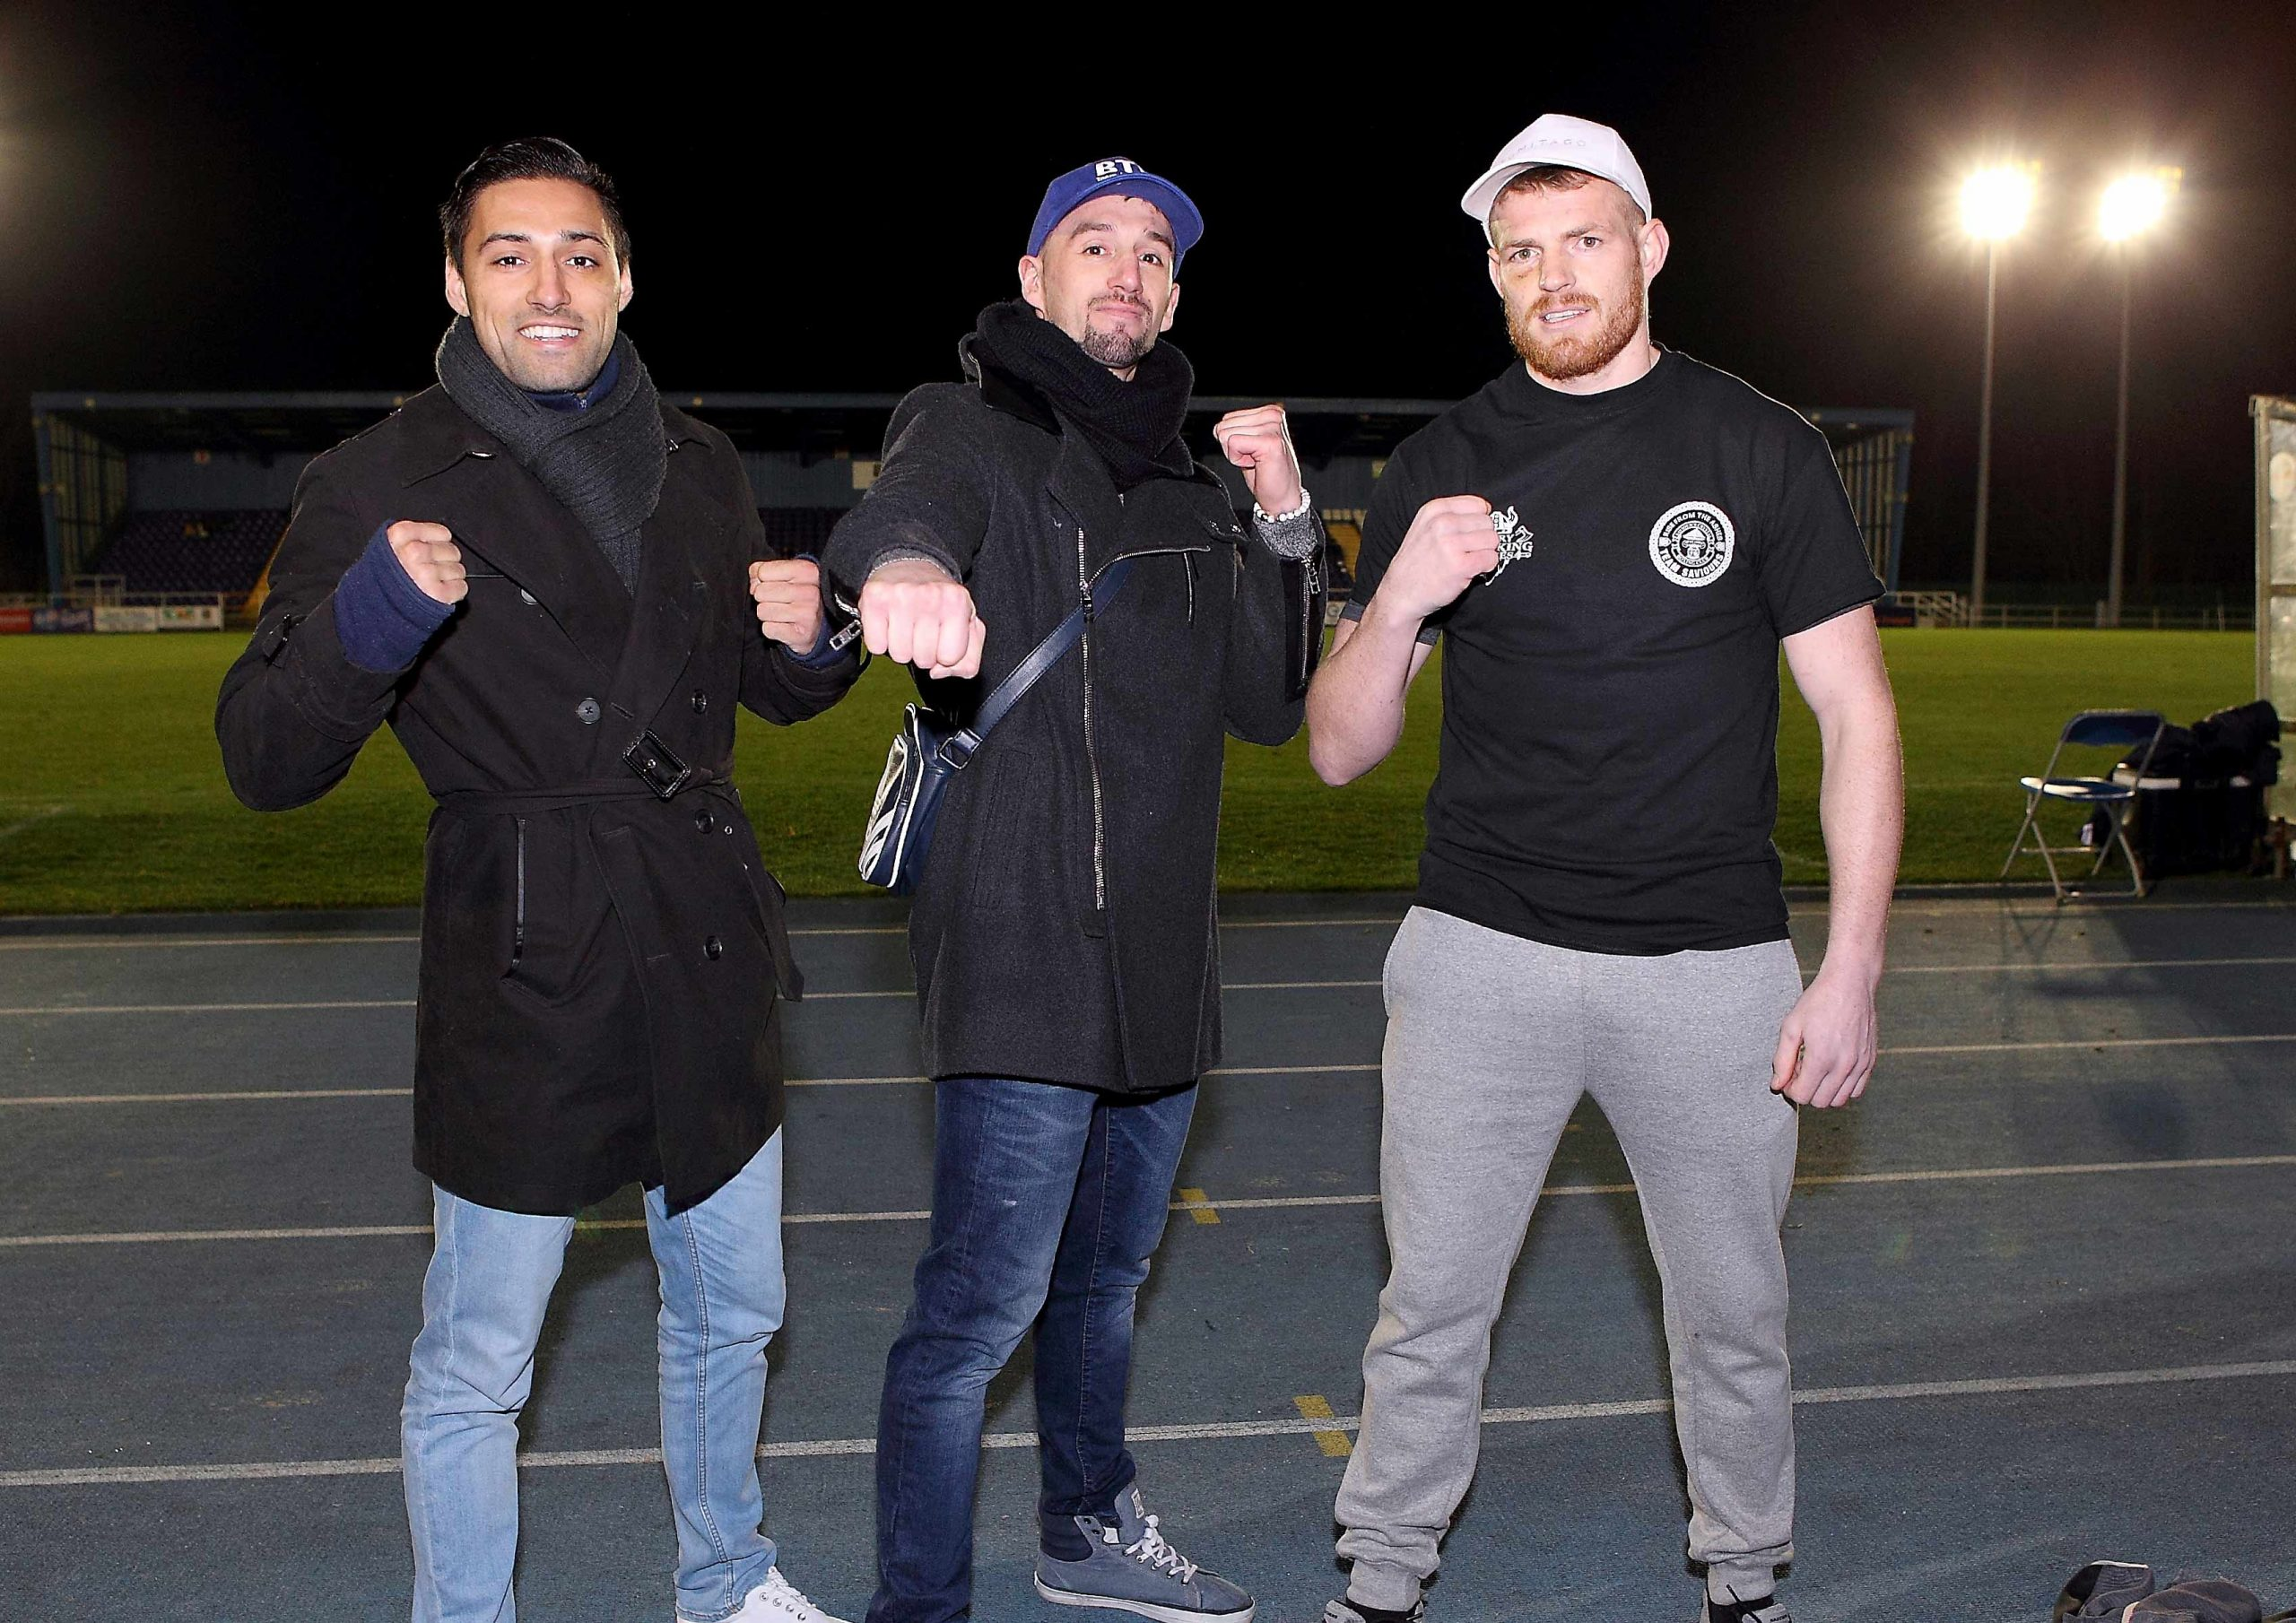 Ring Kings event comes to the WIT Arena this Saturday